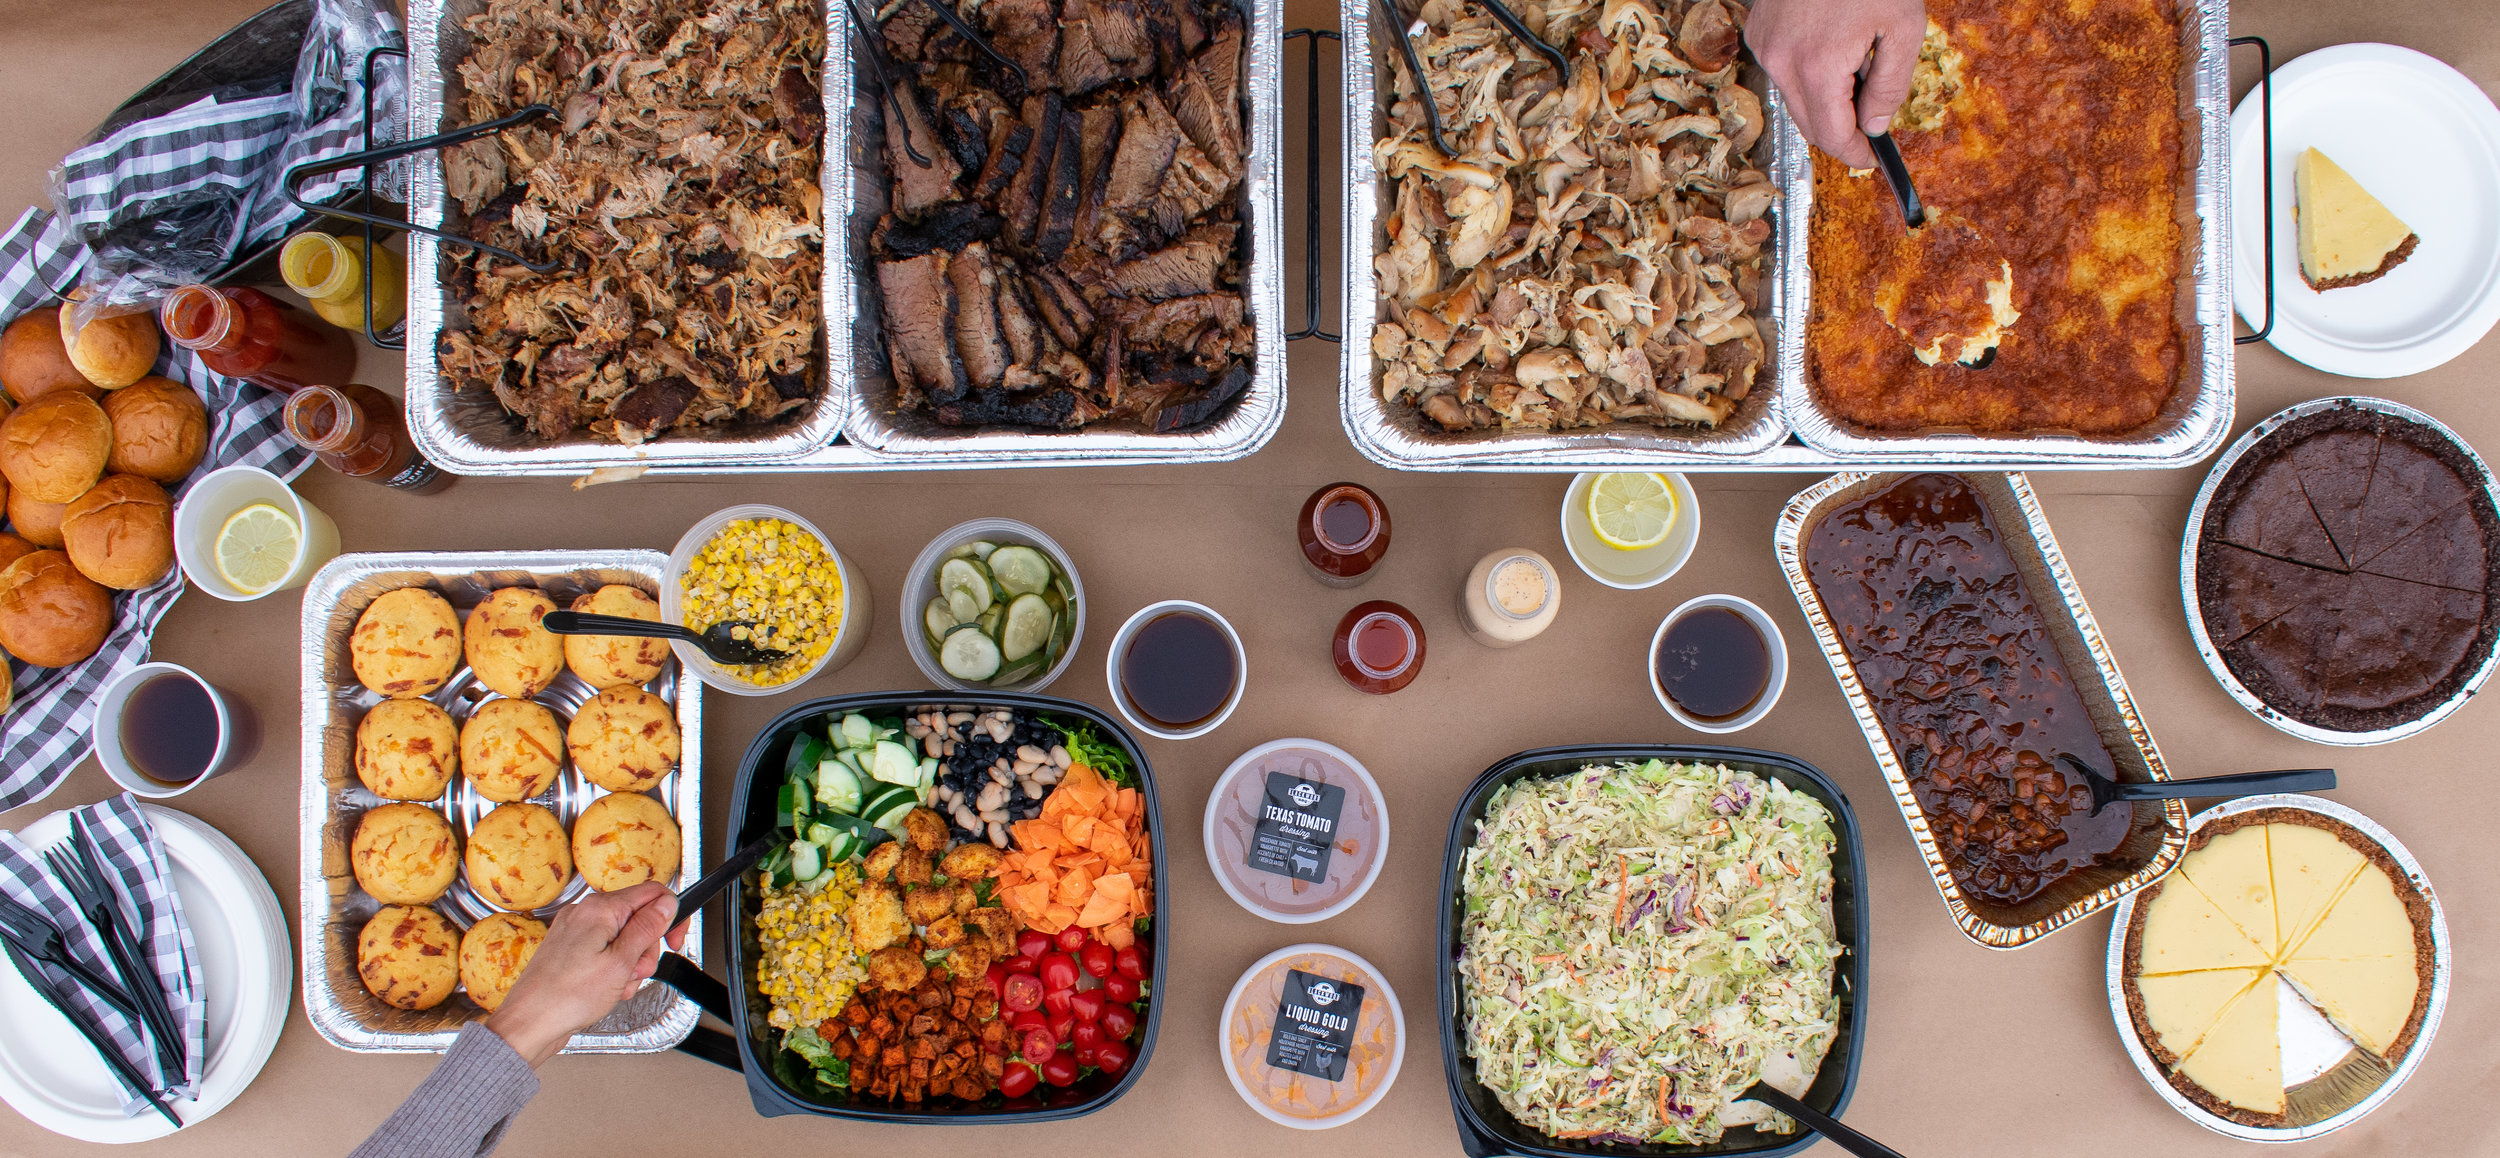 Catering — Blackwood BBQ & Catering